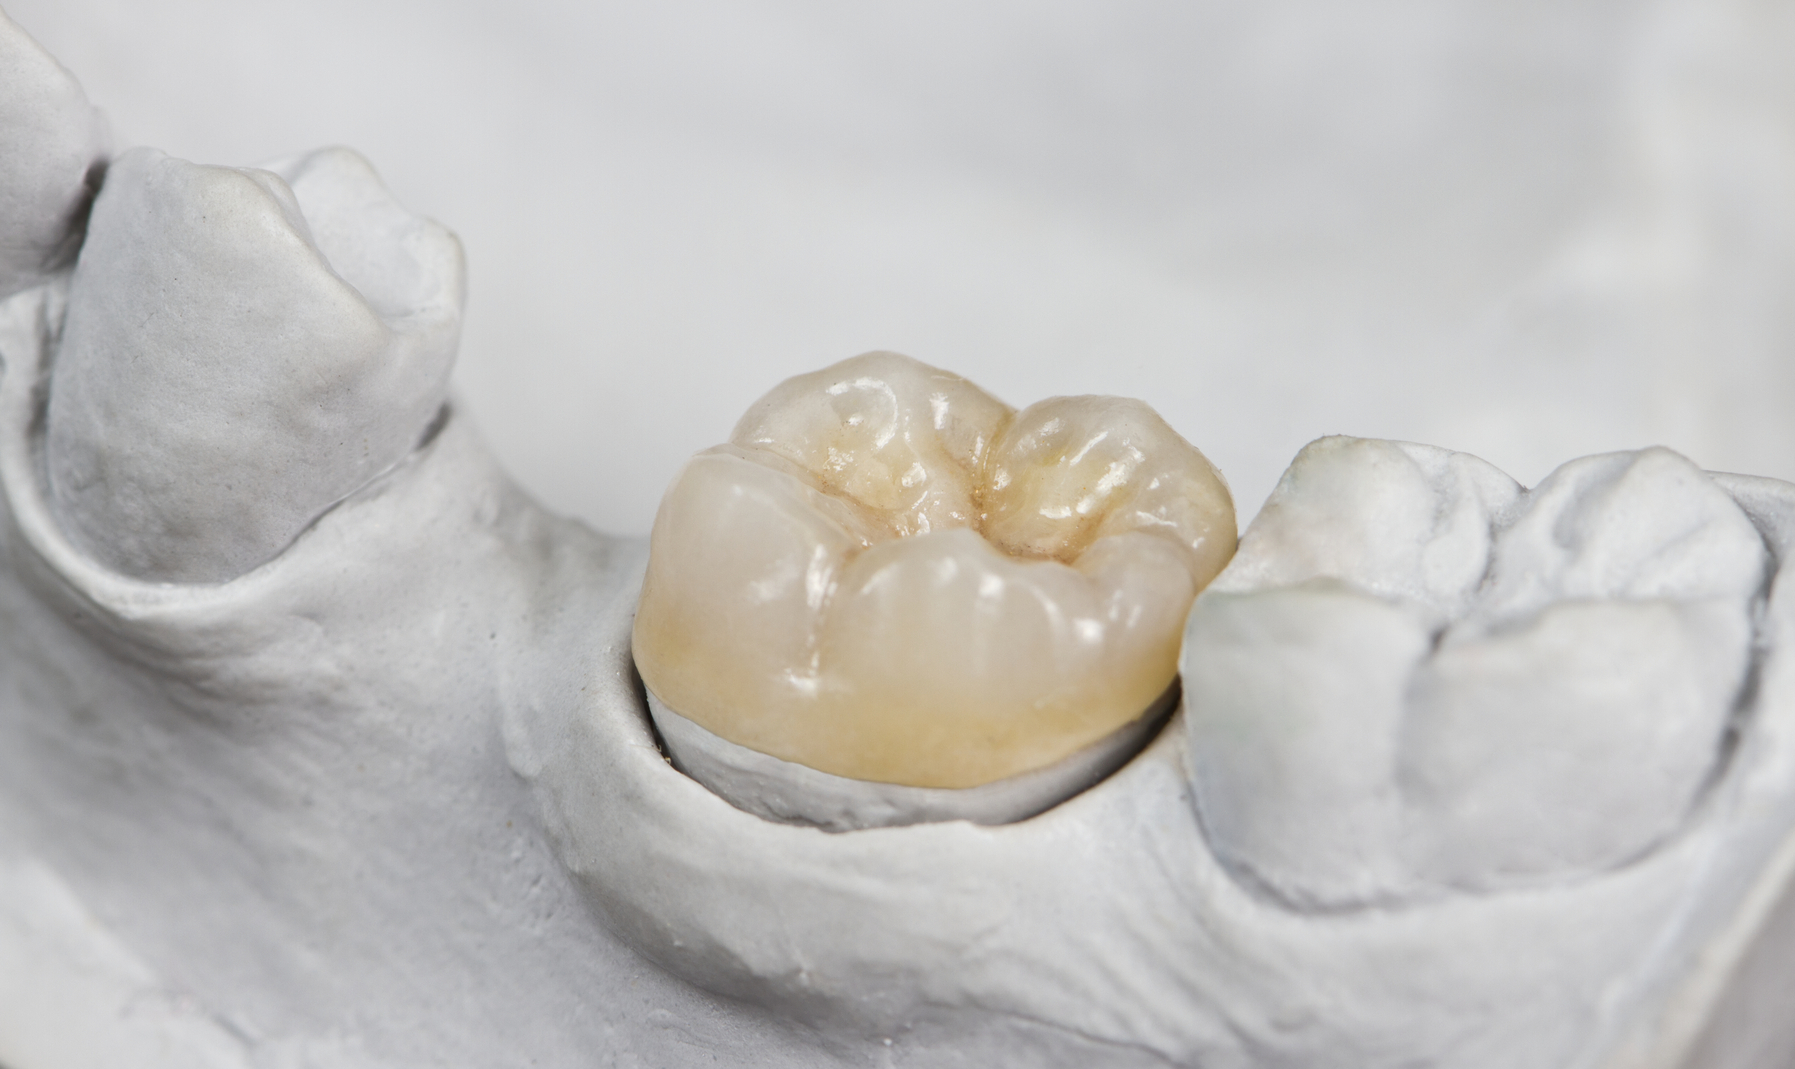 What can my Midwest City Dentist do about my broken tooth?